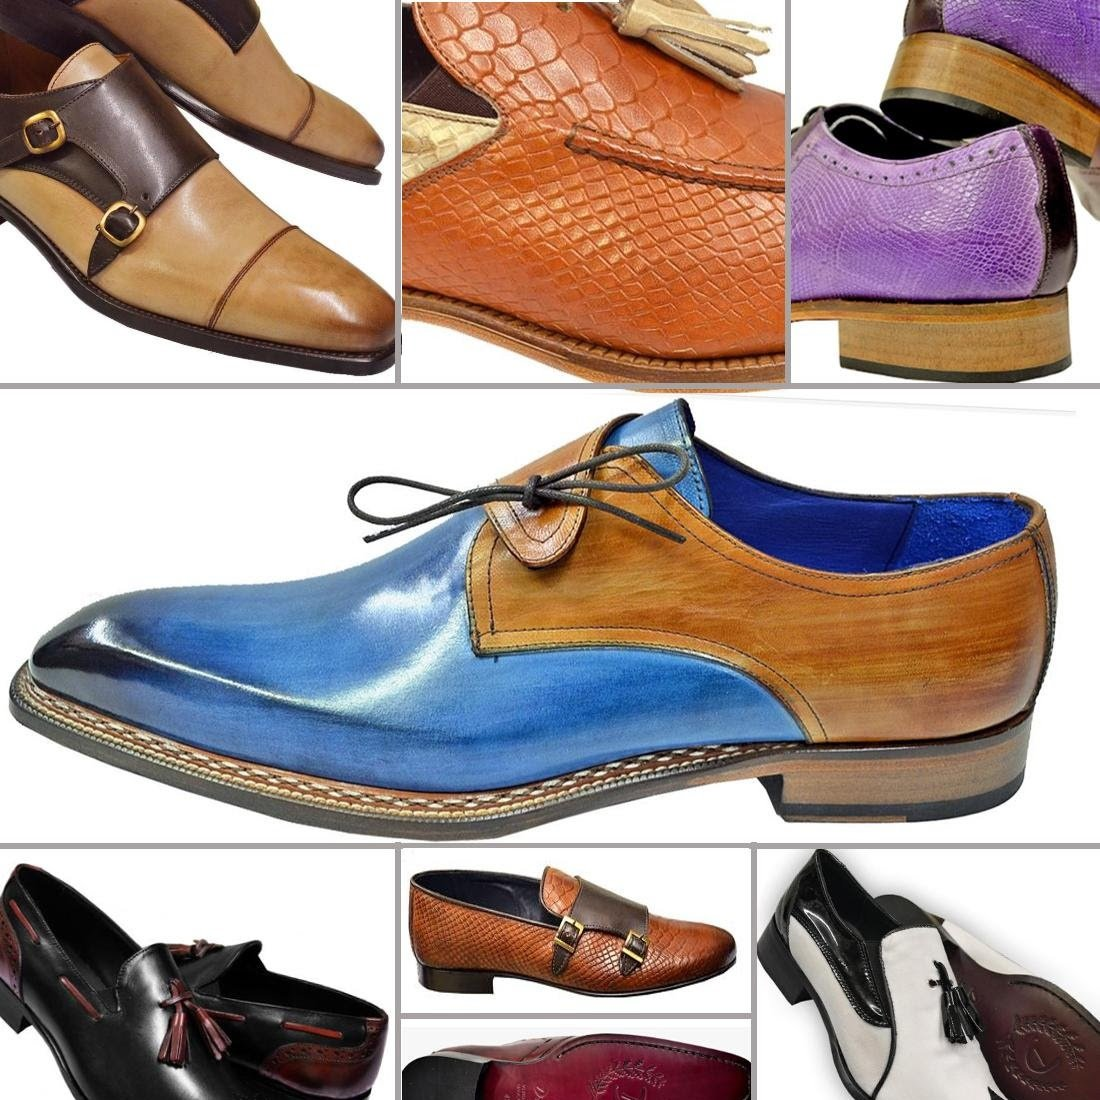 Made In Italy | The Finest Leather Footwear | Now 20% Off